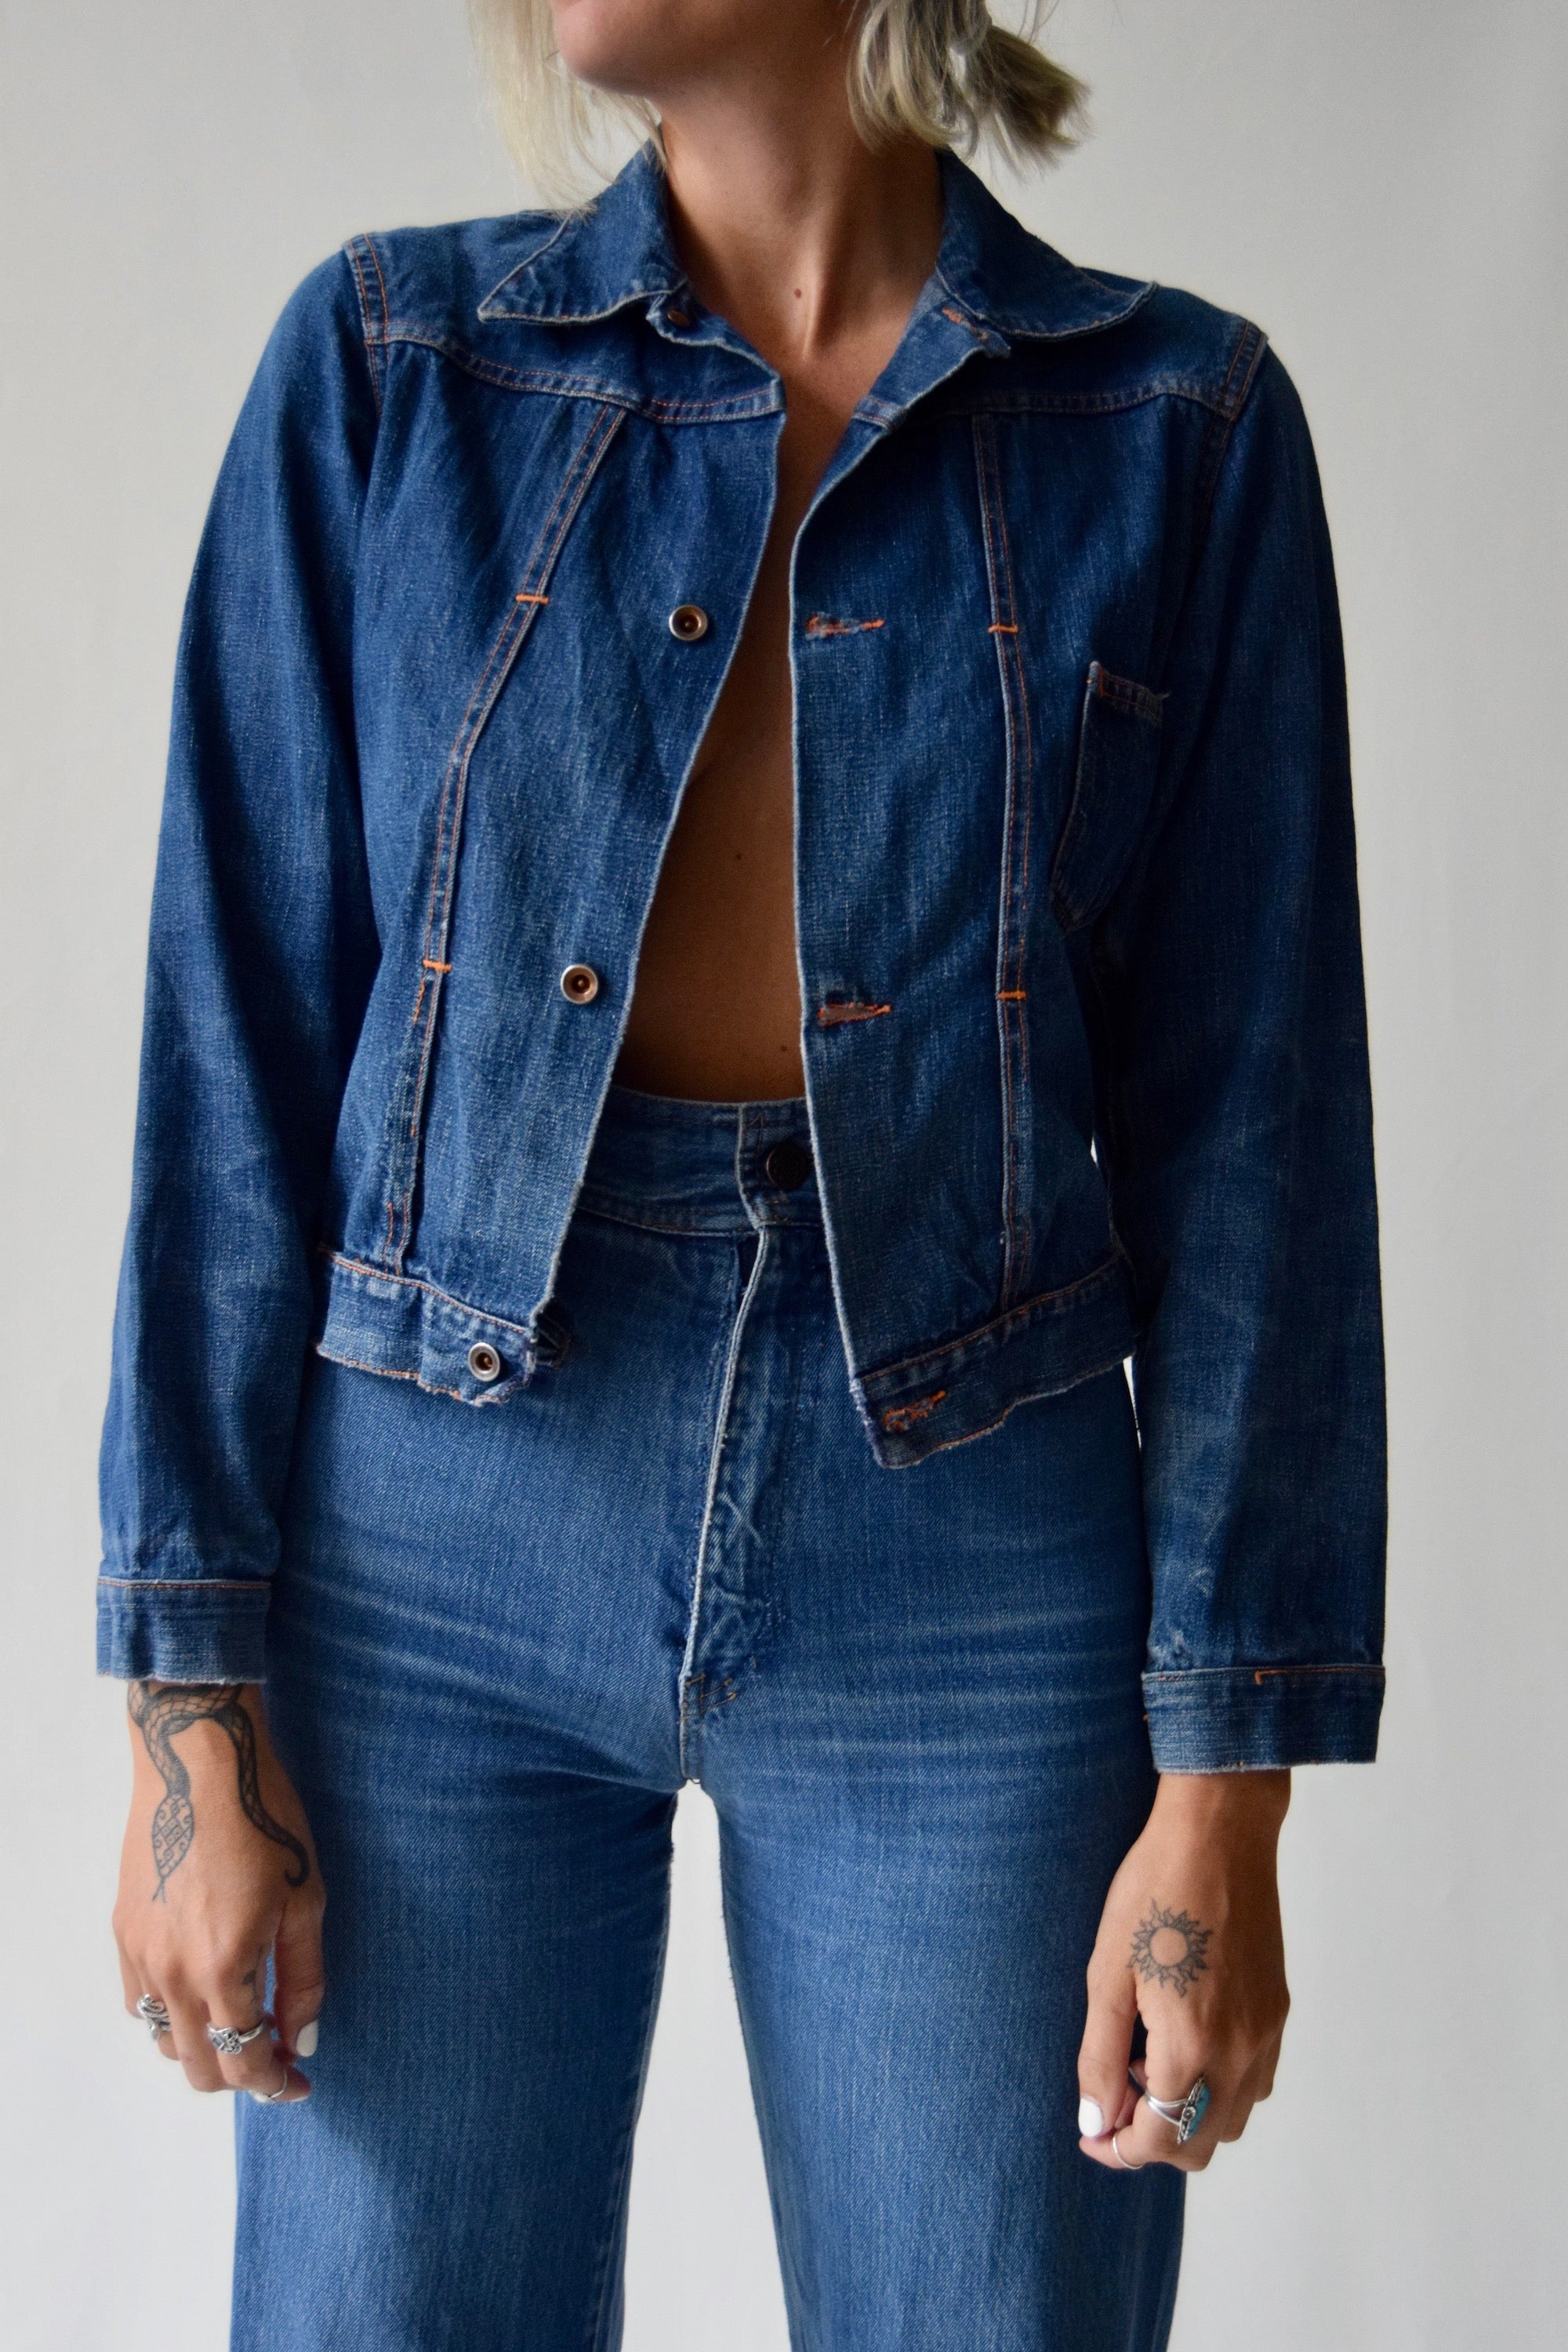 Vintage 1950's Denim Jacket FREE SHIPPING